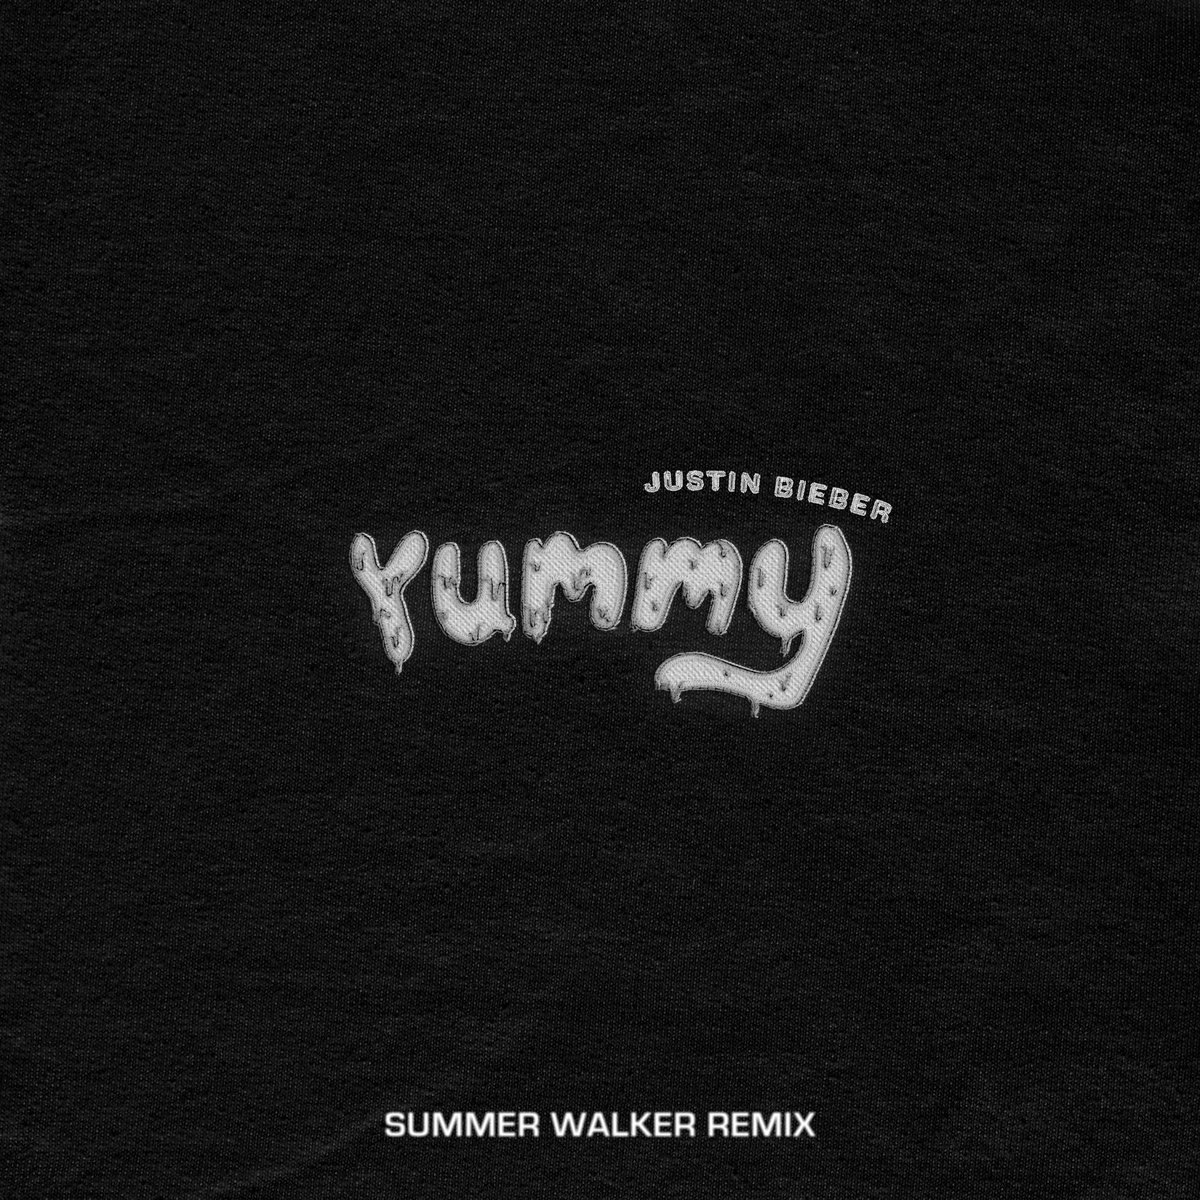 Yummy remix featuring Summer Walker out tomorrow!